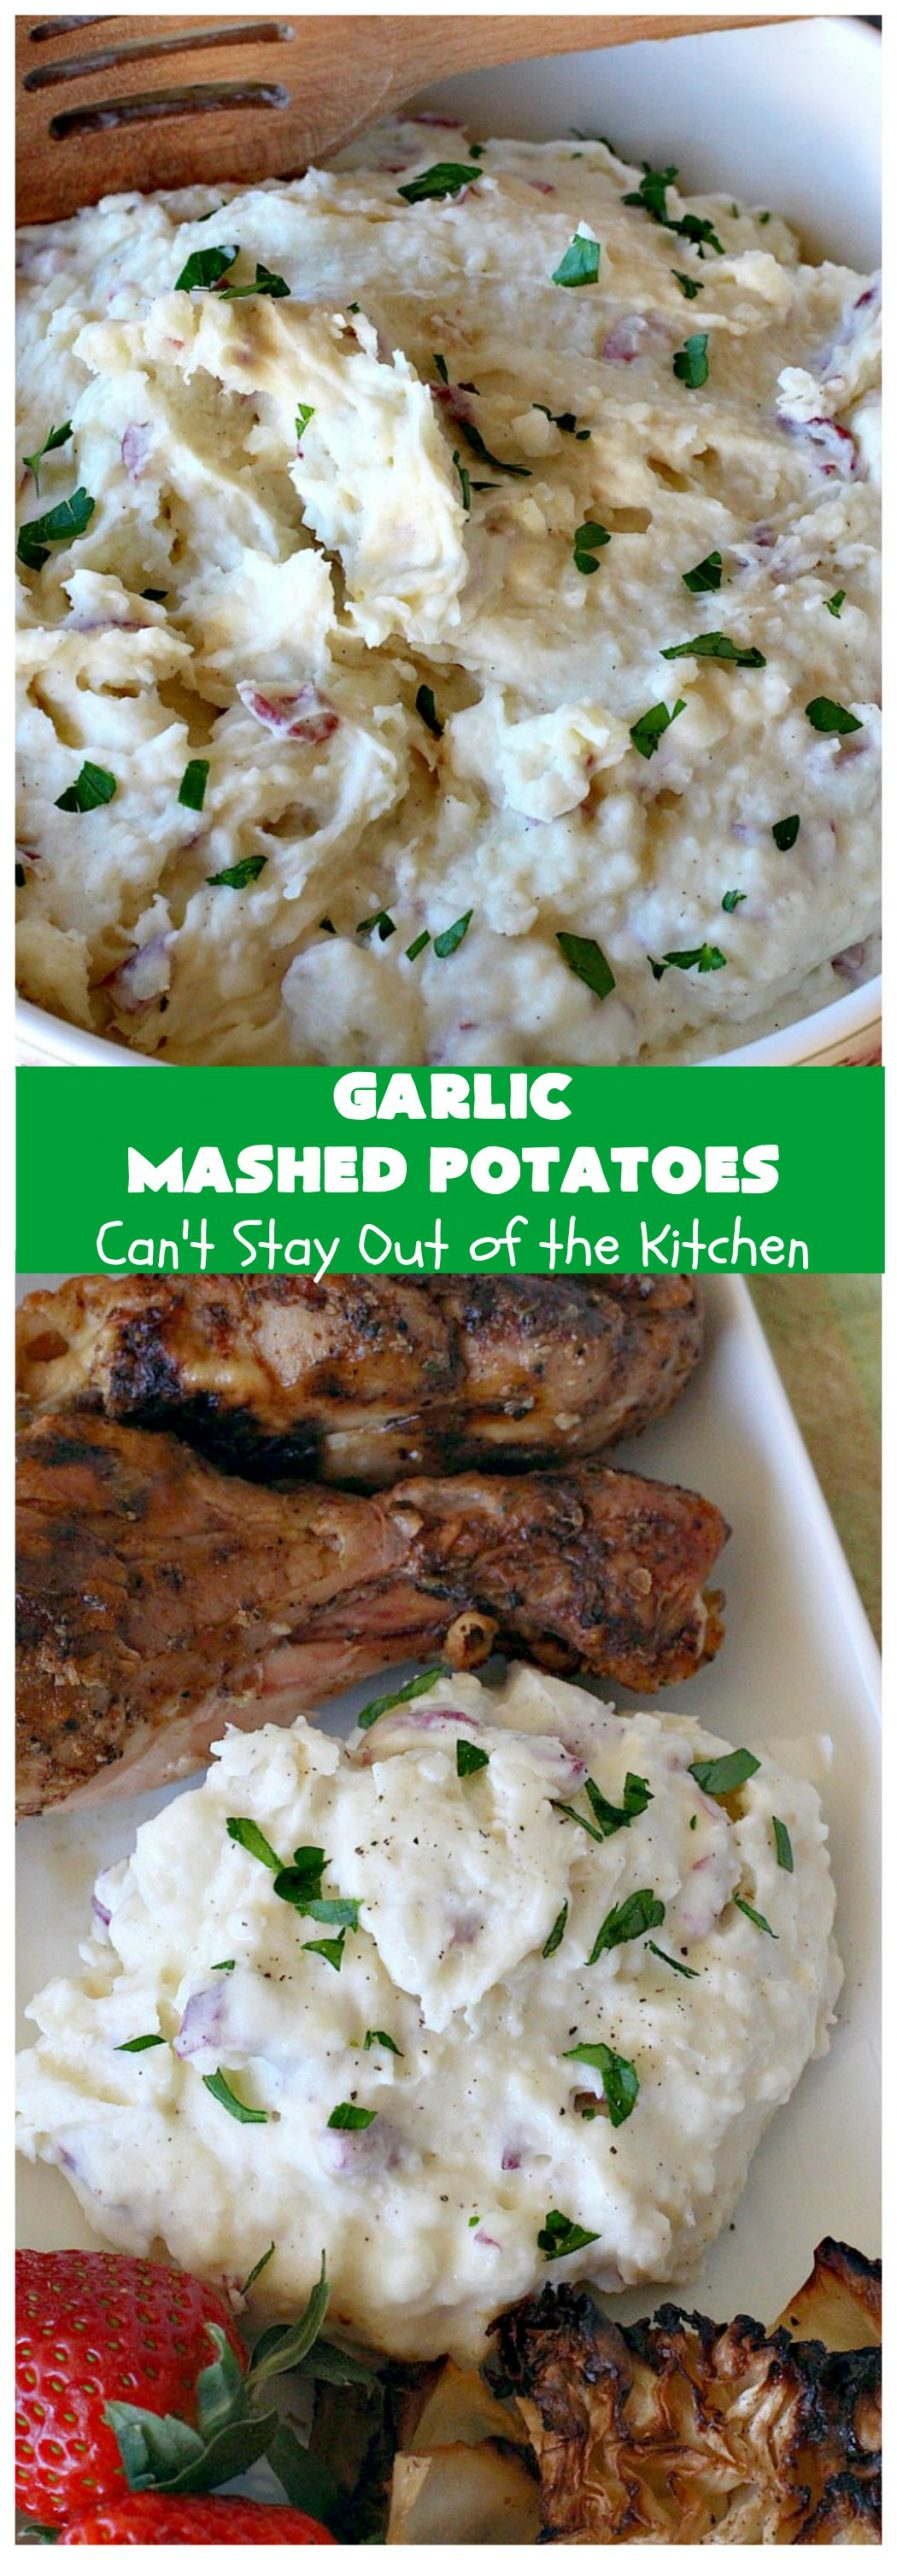 Garlic Mashed Potatoes | Can't Stay Out of the Kitchen